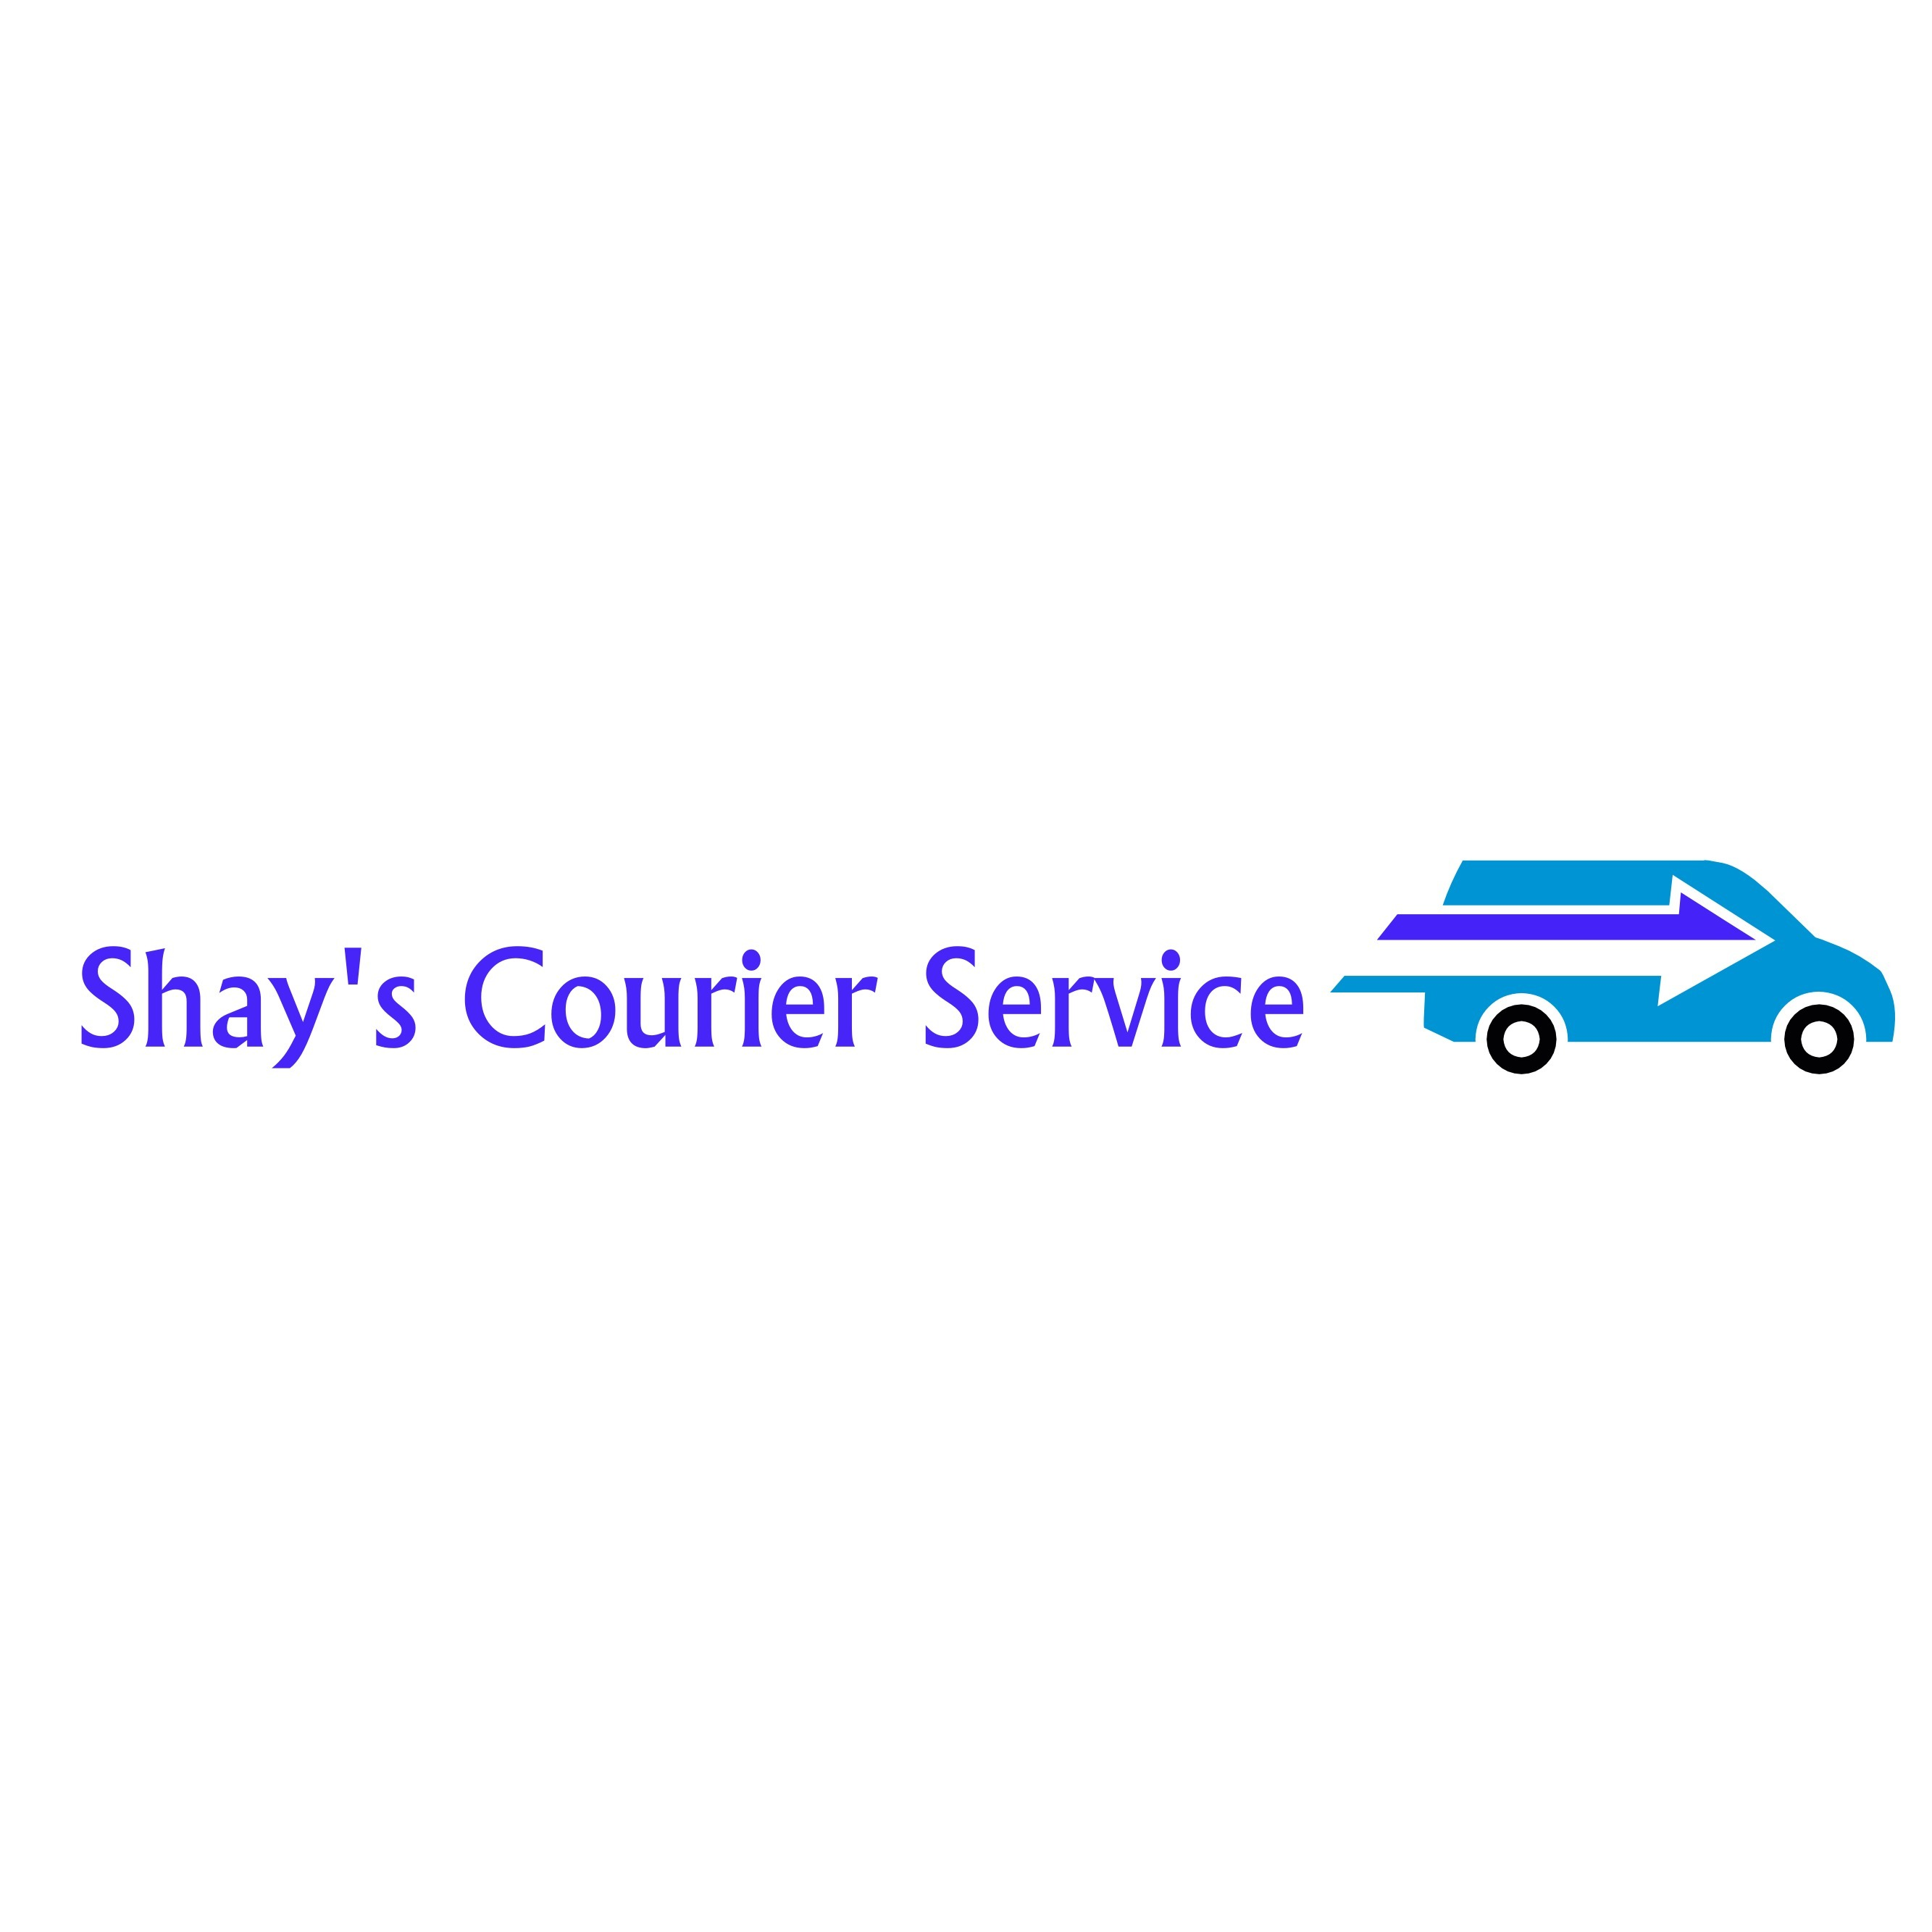 Shay's Courier Service